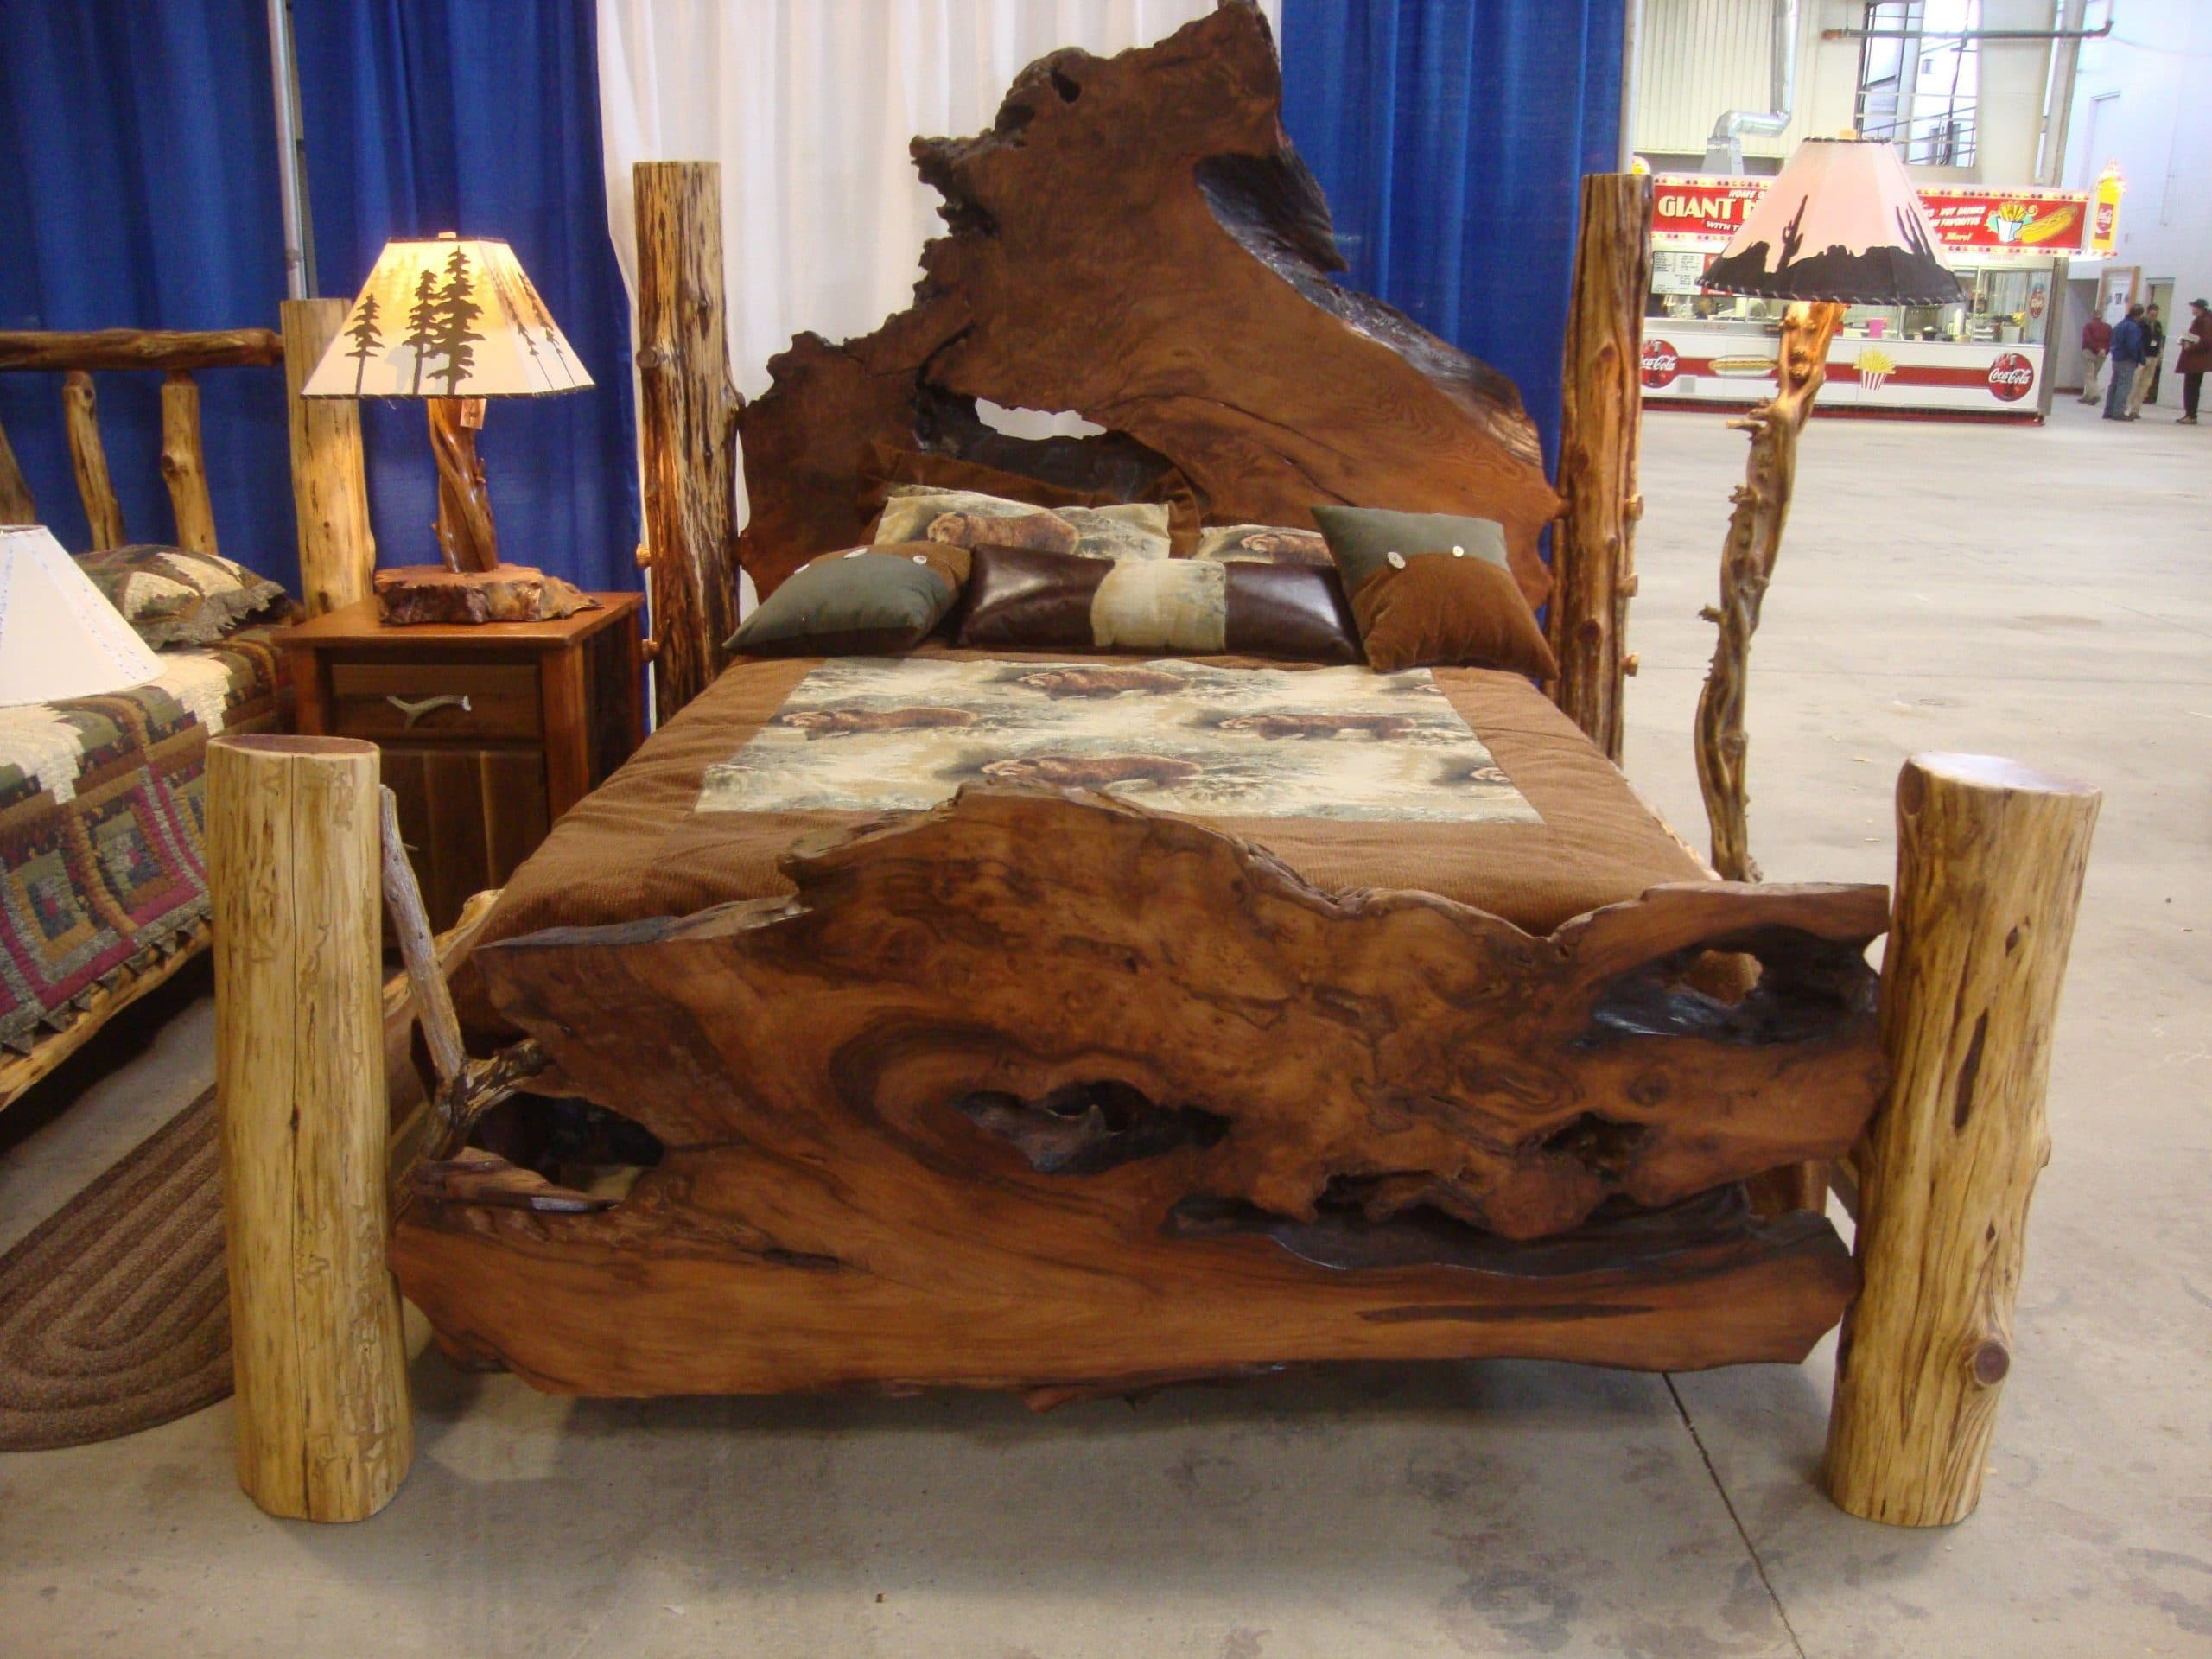 Log wood furniture at the galleria